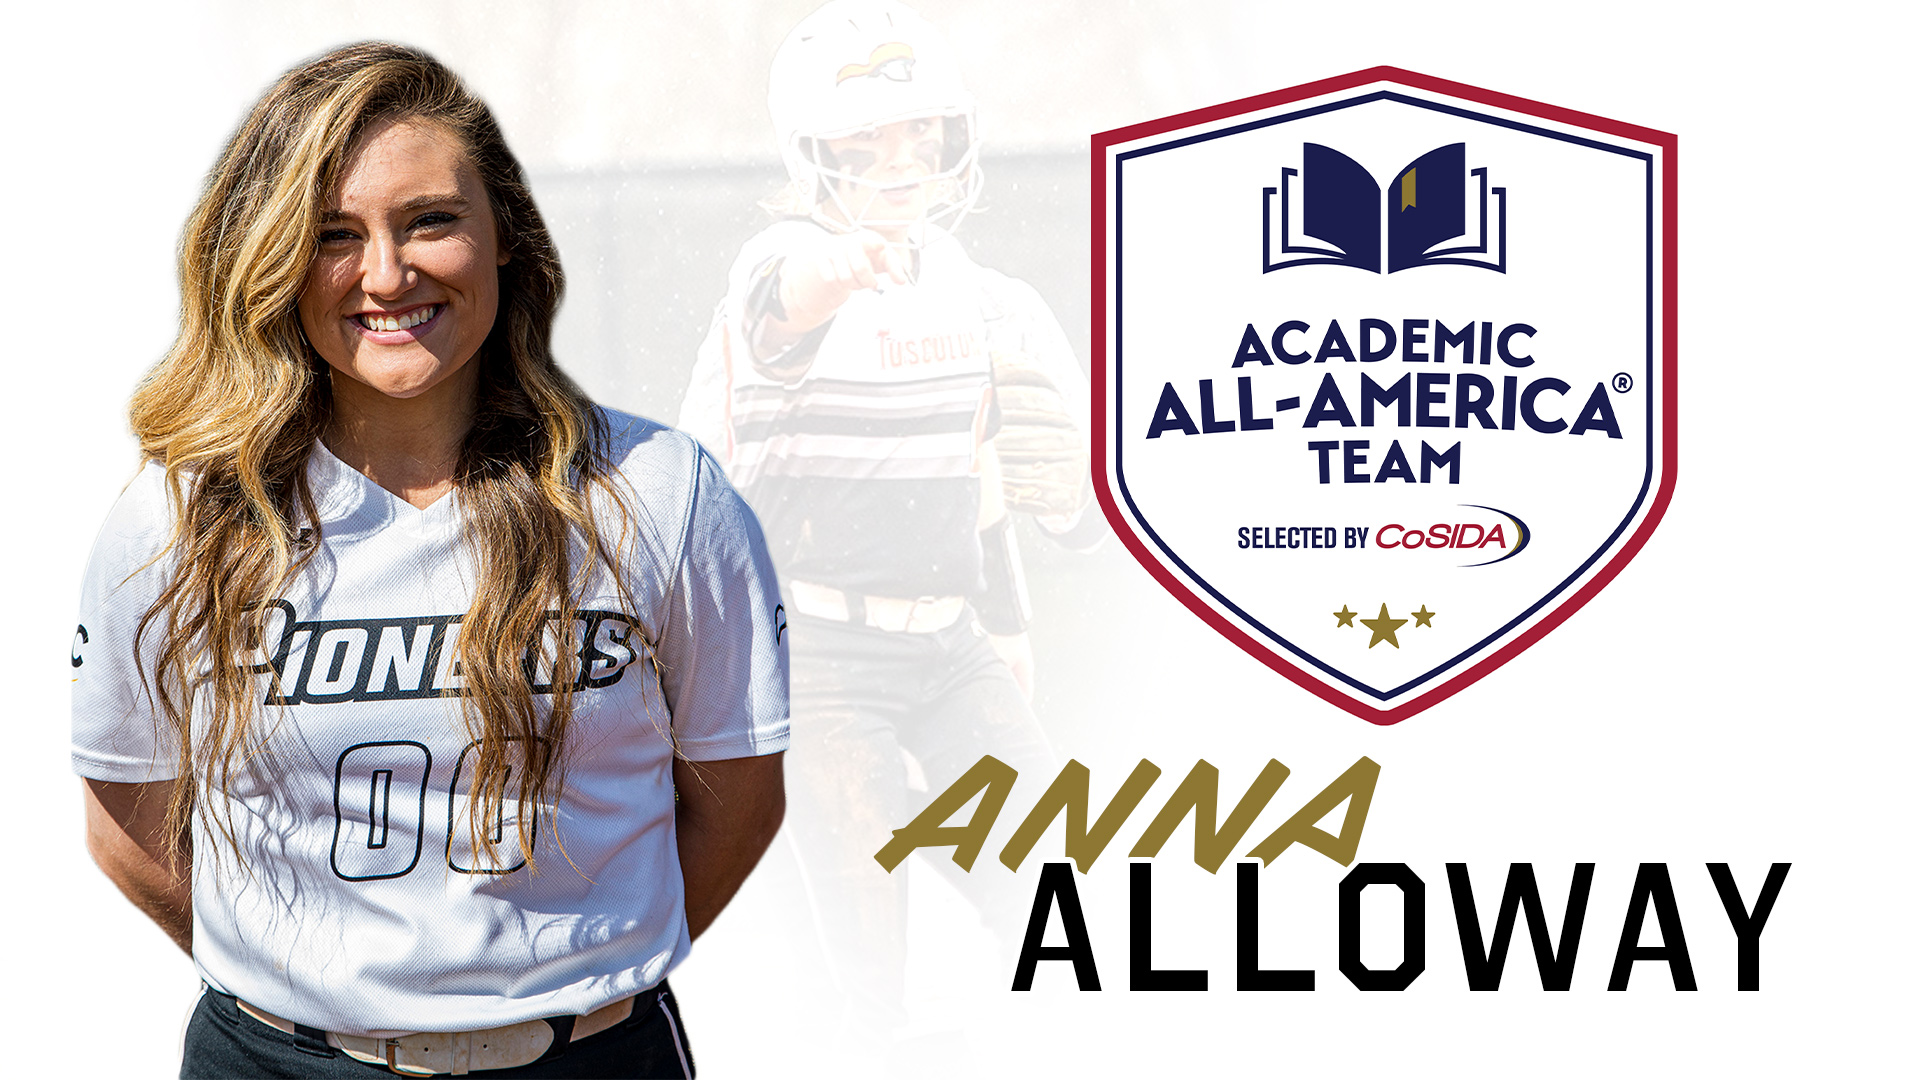 Alloway named to CoSIDA Academic All-America softball team